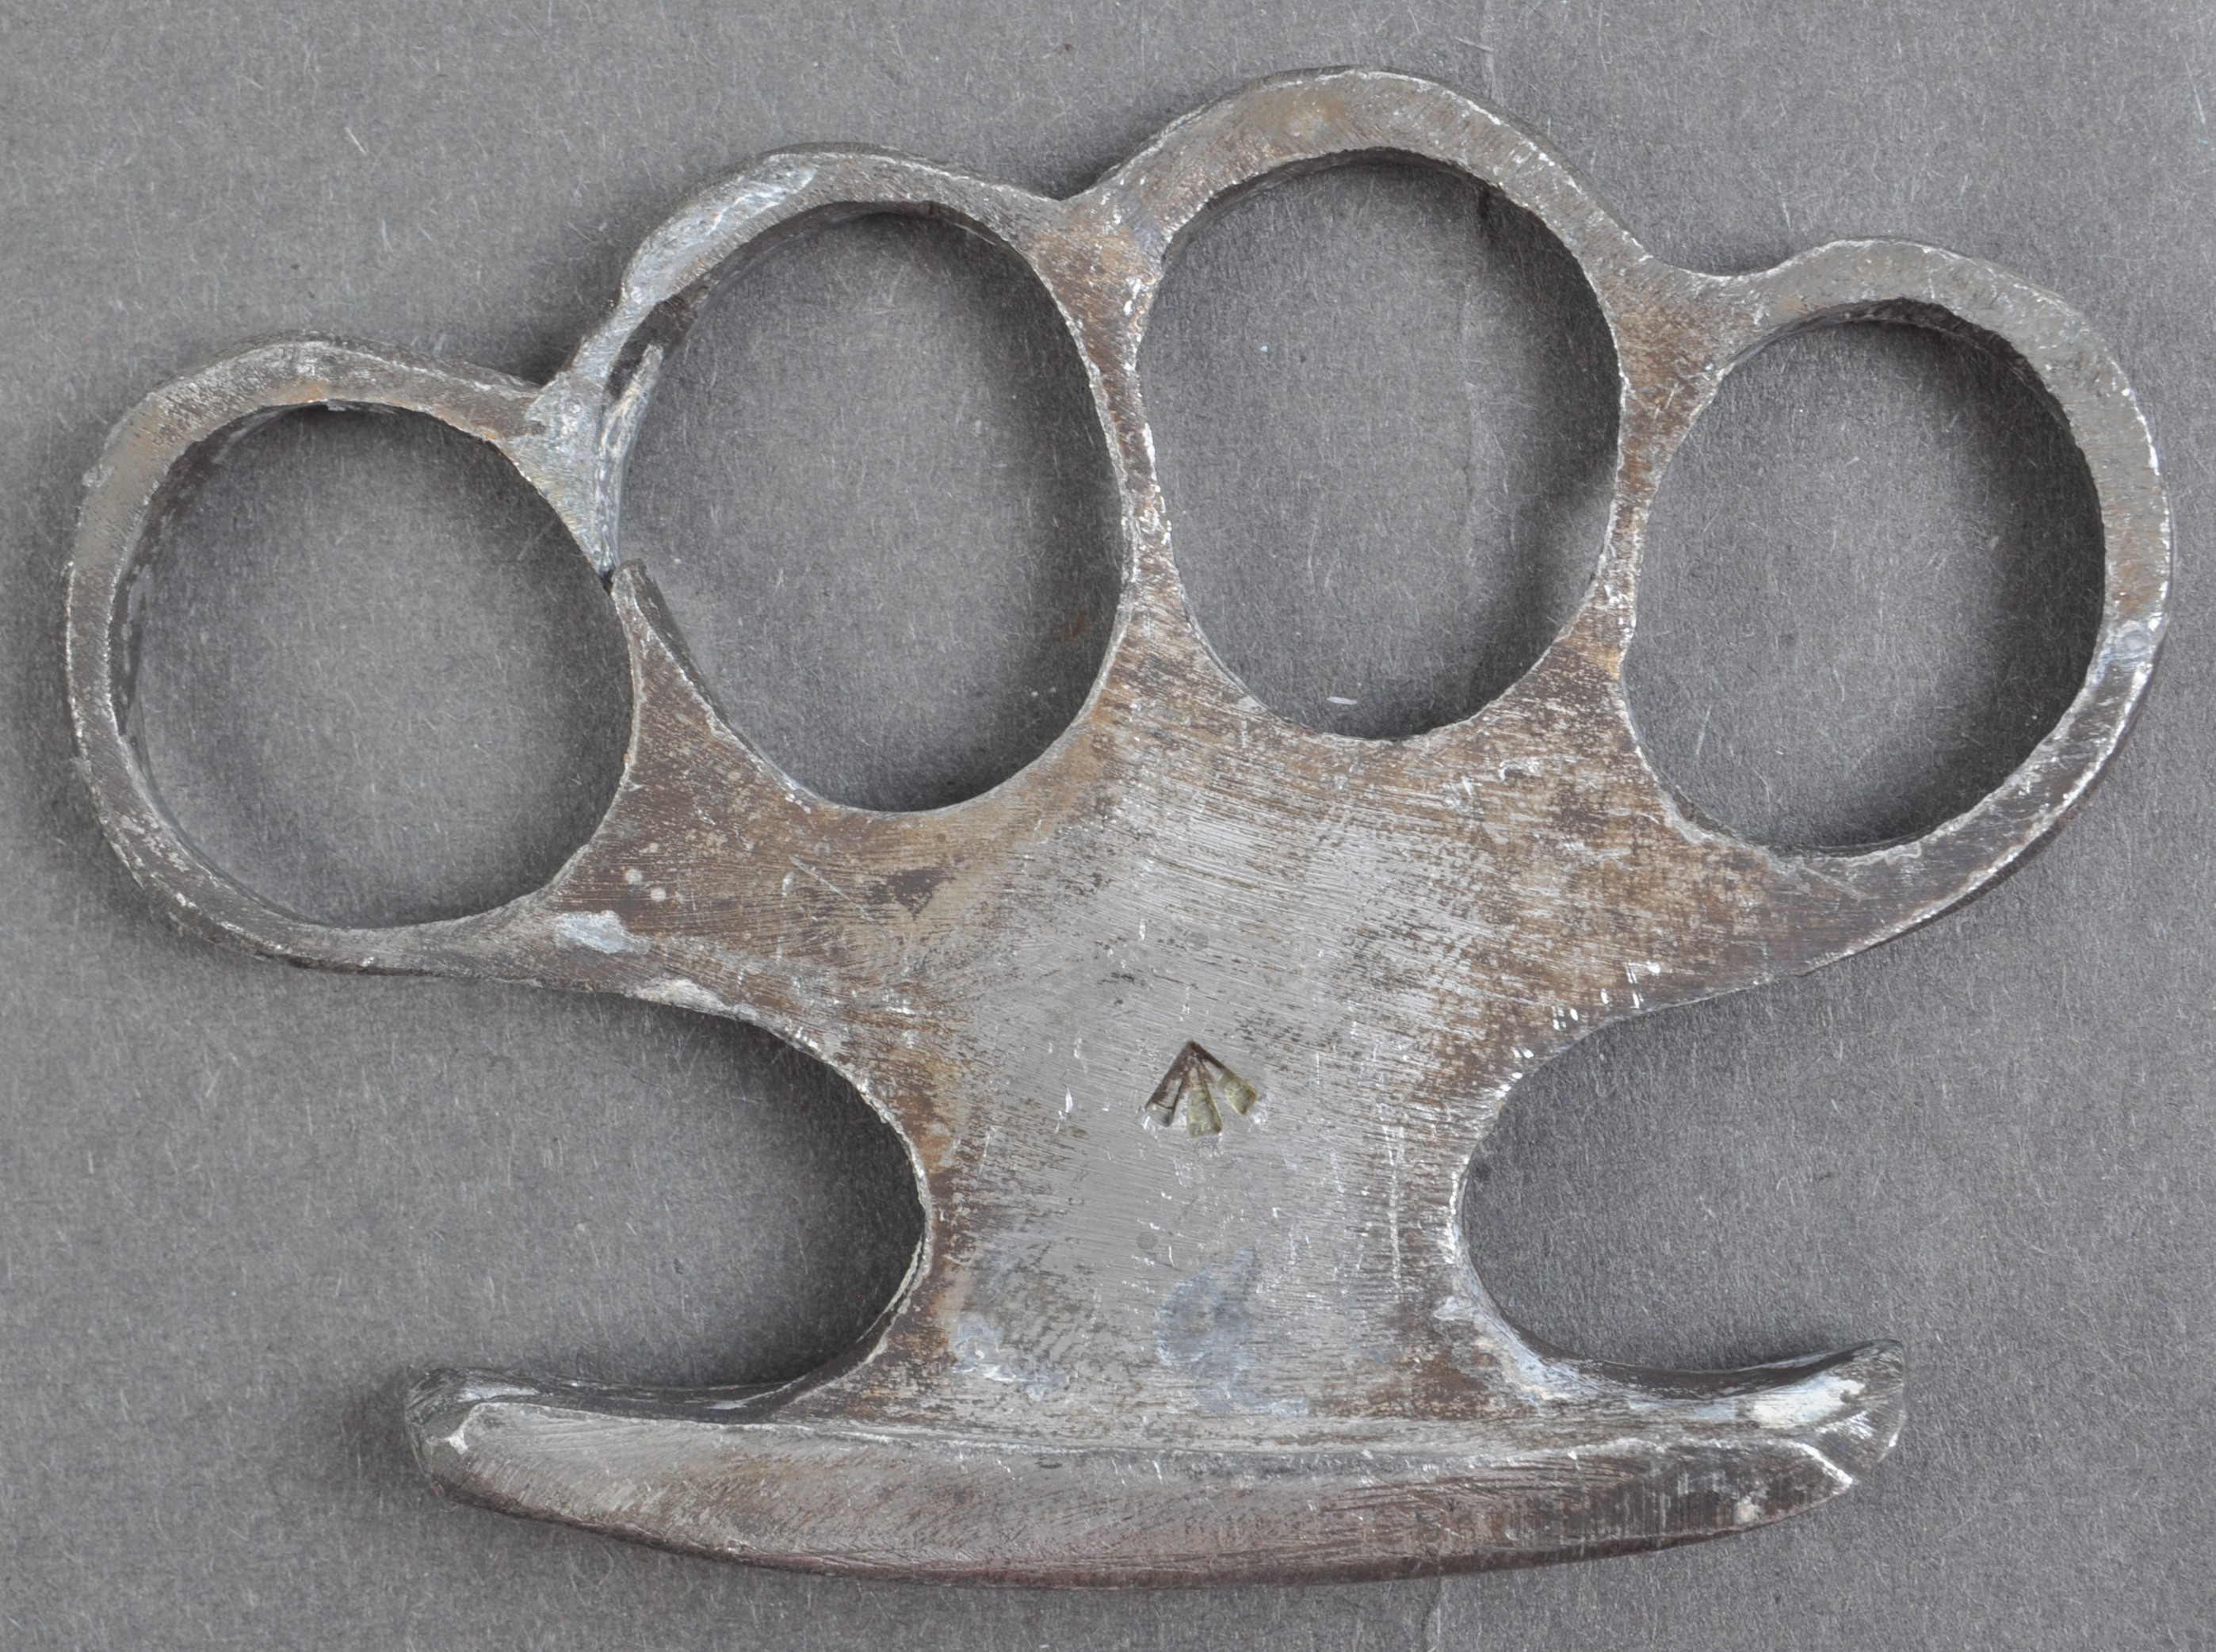 WWI FIRST WORLD WAR BRITISH ARMY KNUCKLEDUSTER C1916 - Image 2 of 5